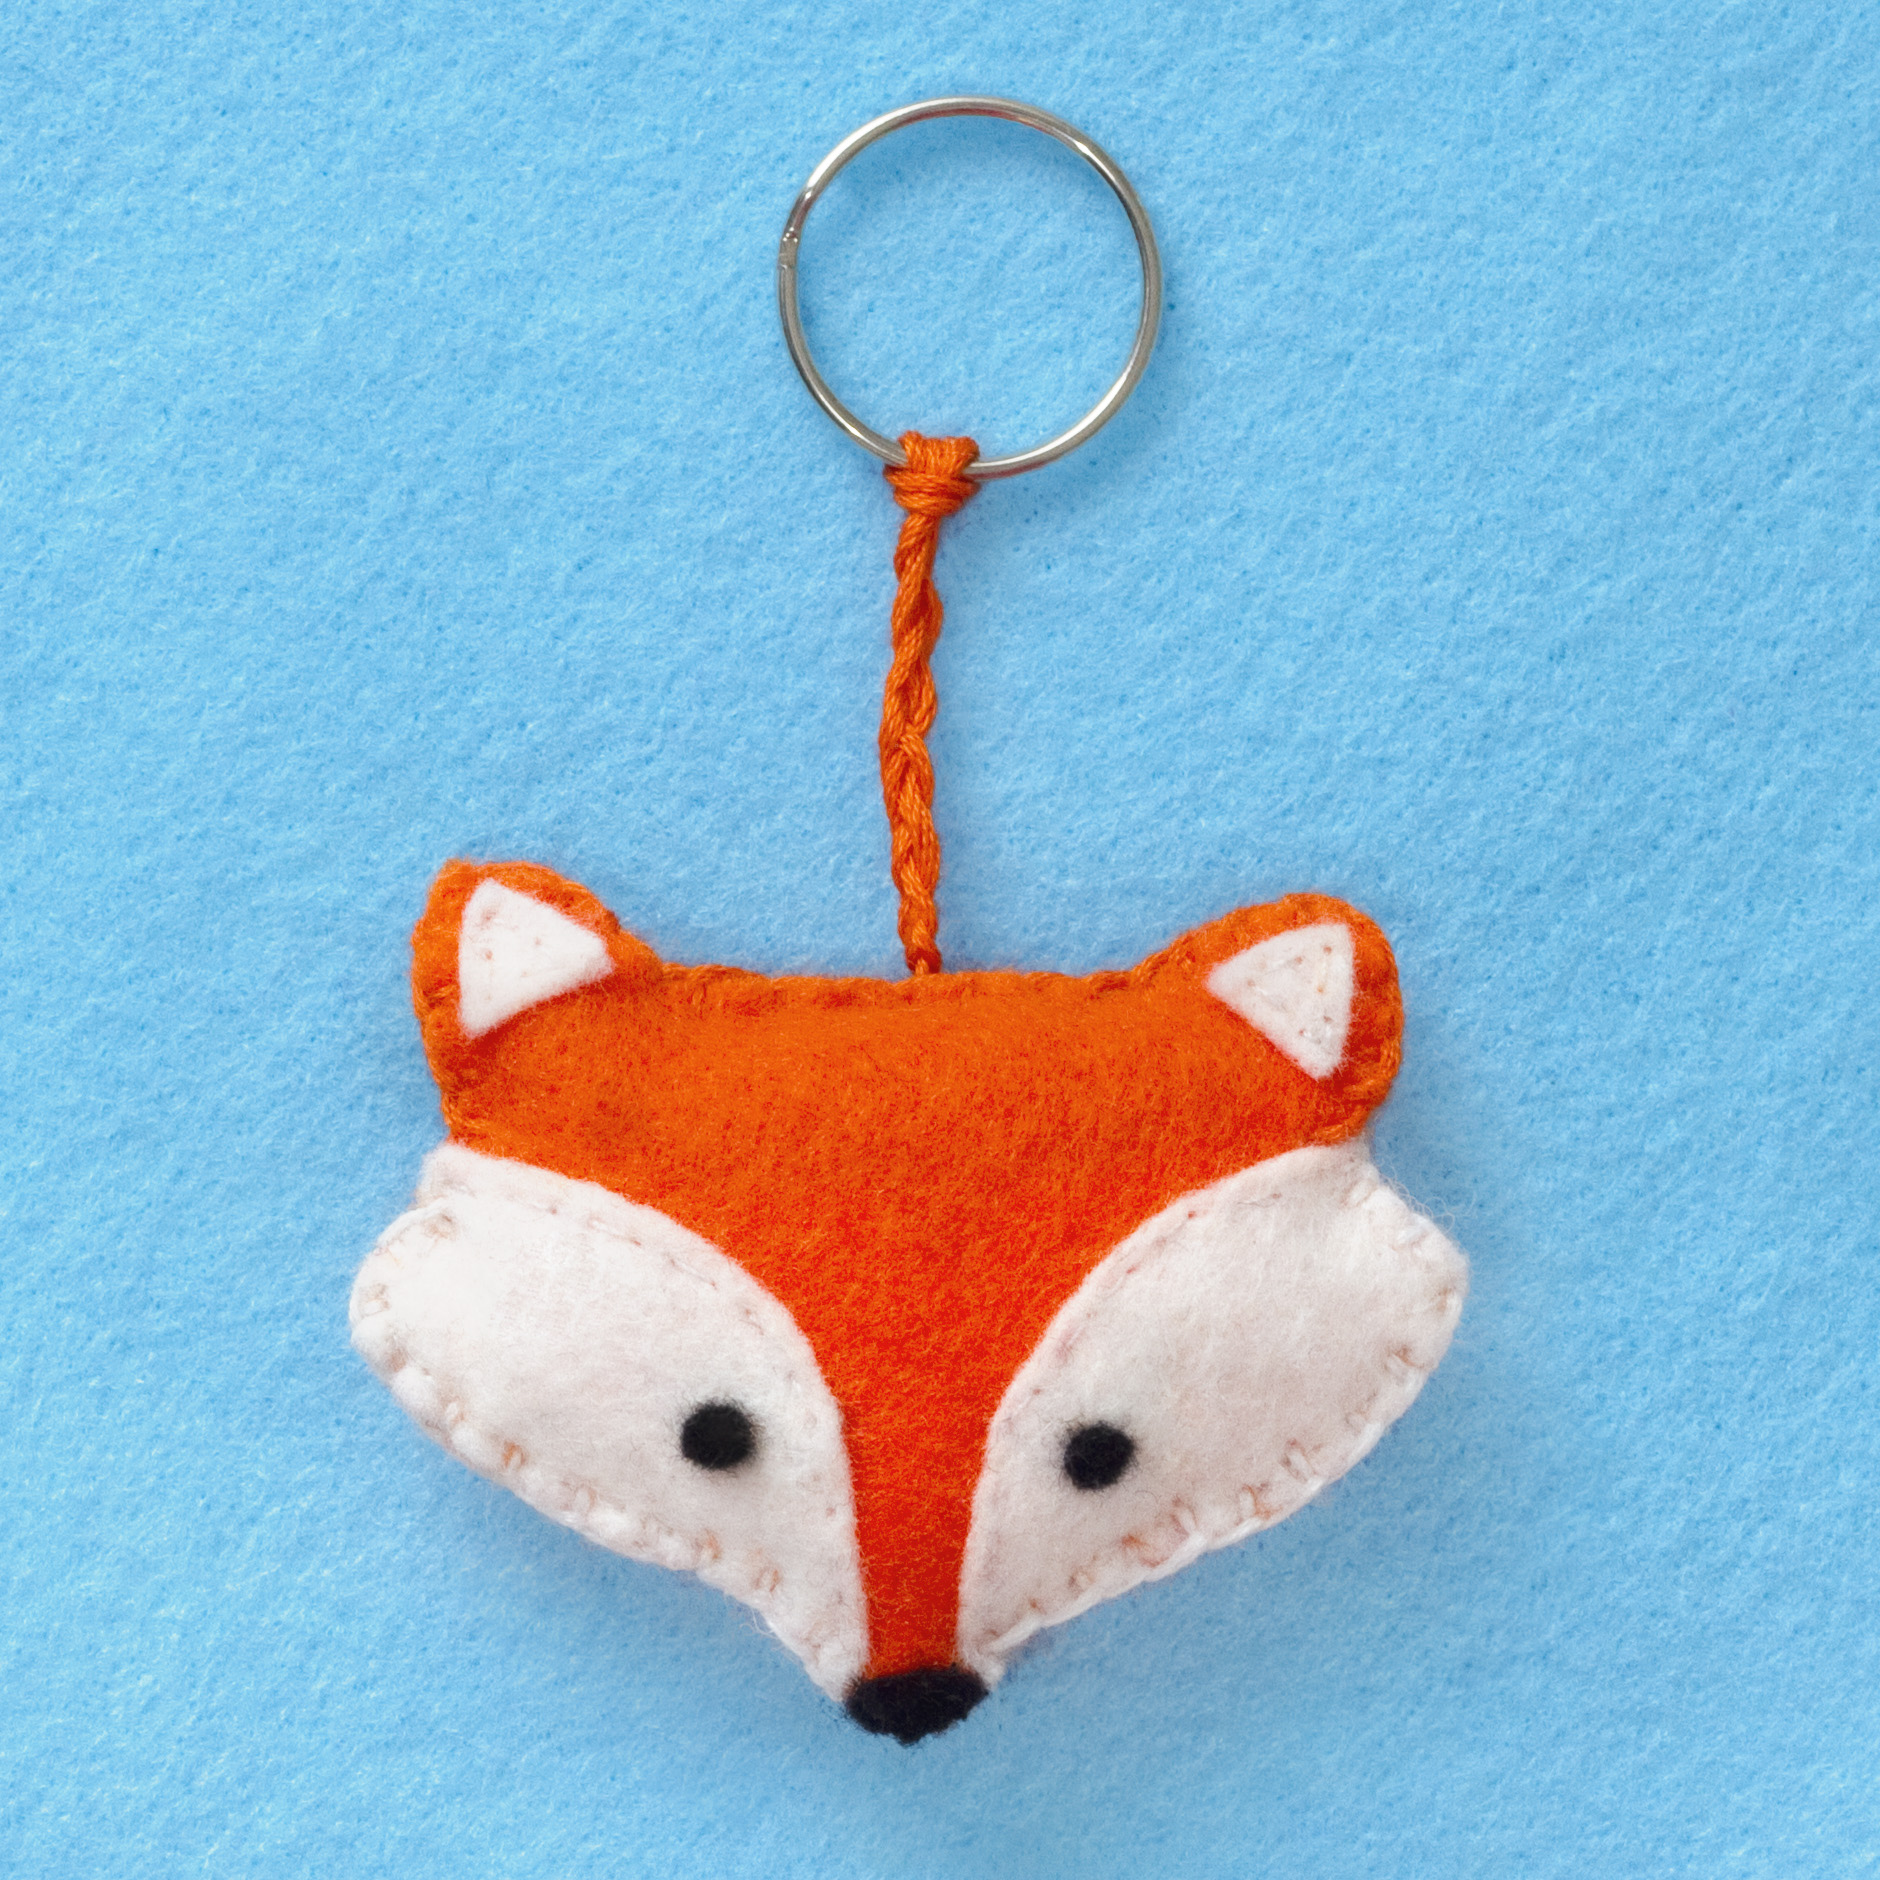 Step 3. Stitch the two orange pieces of felt together using a blanket stitch. Start with the top and use orange embroidery thread over the orange felt. Use the white embroidery cord over the white felt. Just before you reach the end, fill the fox with stuffing. Finally, plait some orange embroidery thread and use it to attach the keyring to the fox!  Subscribe to my  newsletter to receive fun craft ideas weekly!